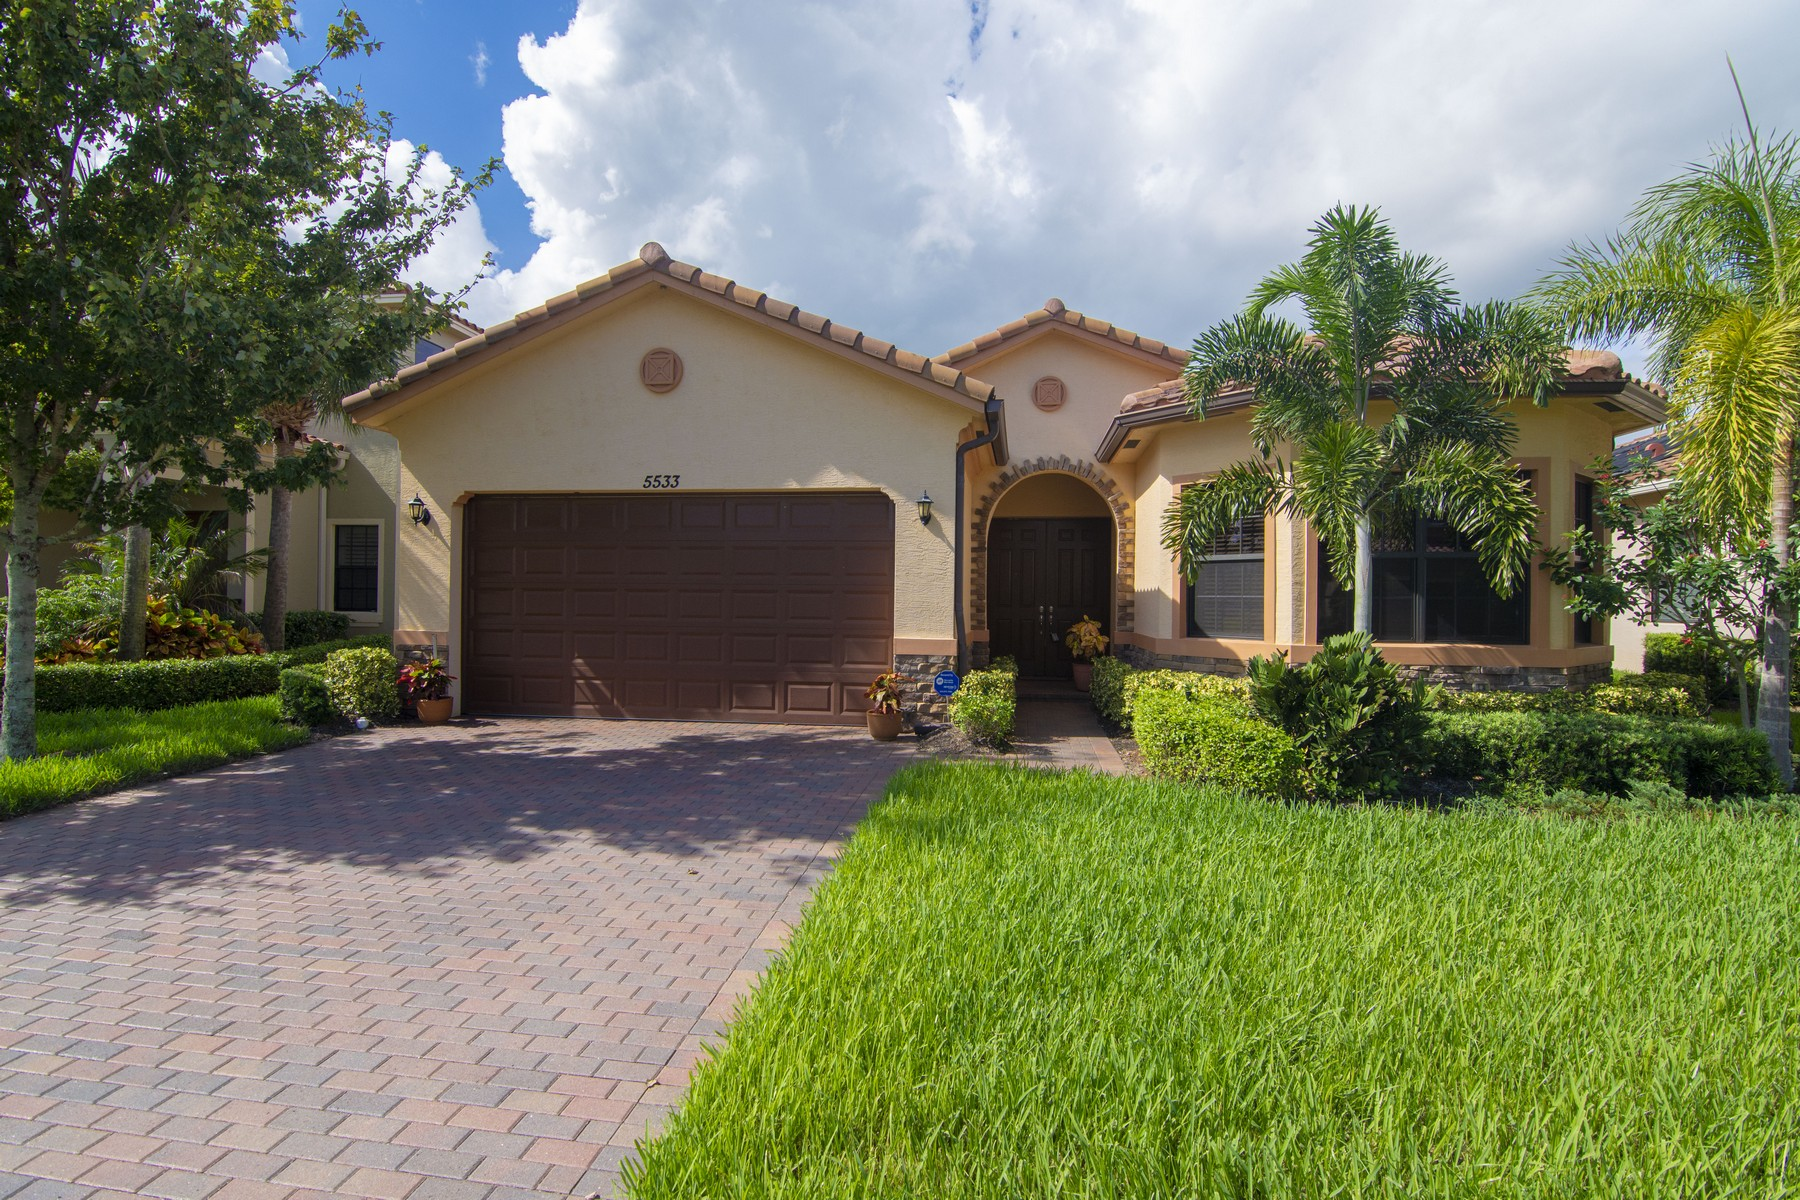 Single Family Homes for Sale at All You Had Hoped For in a Stunning Home 5533 57th Avenue Vero Beach, Florida 32967 United States